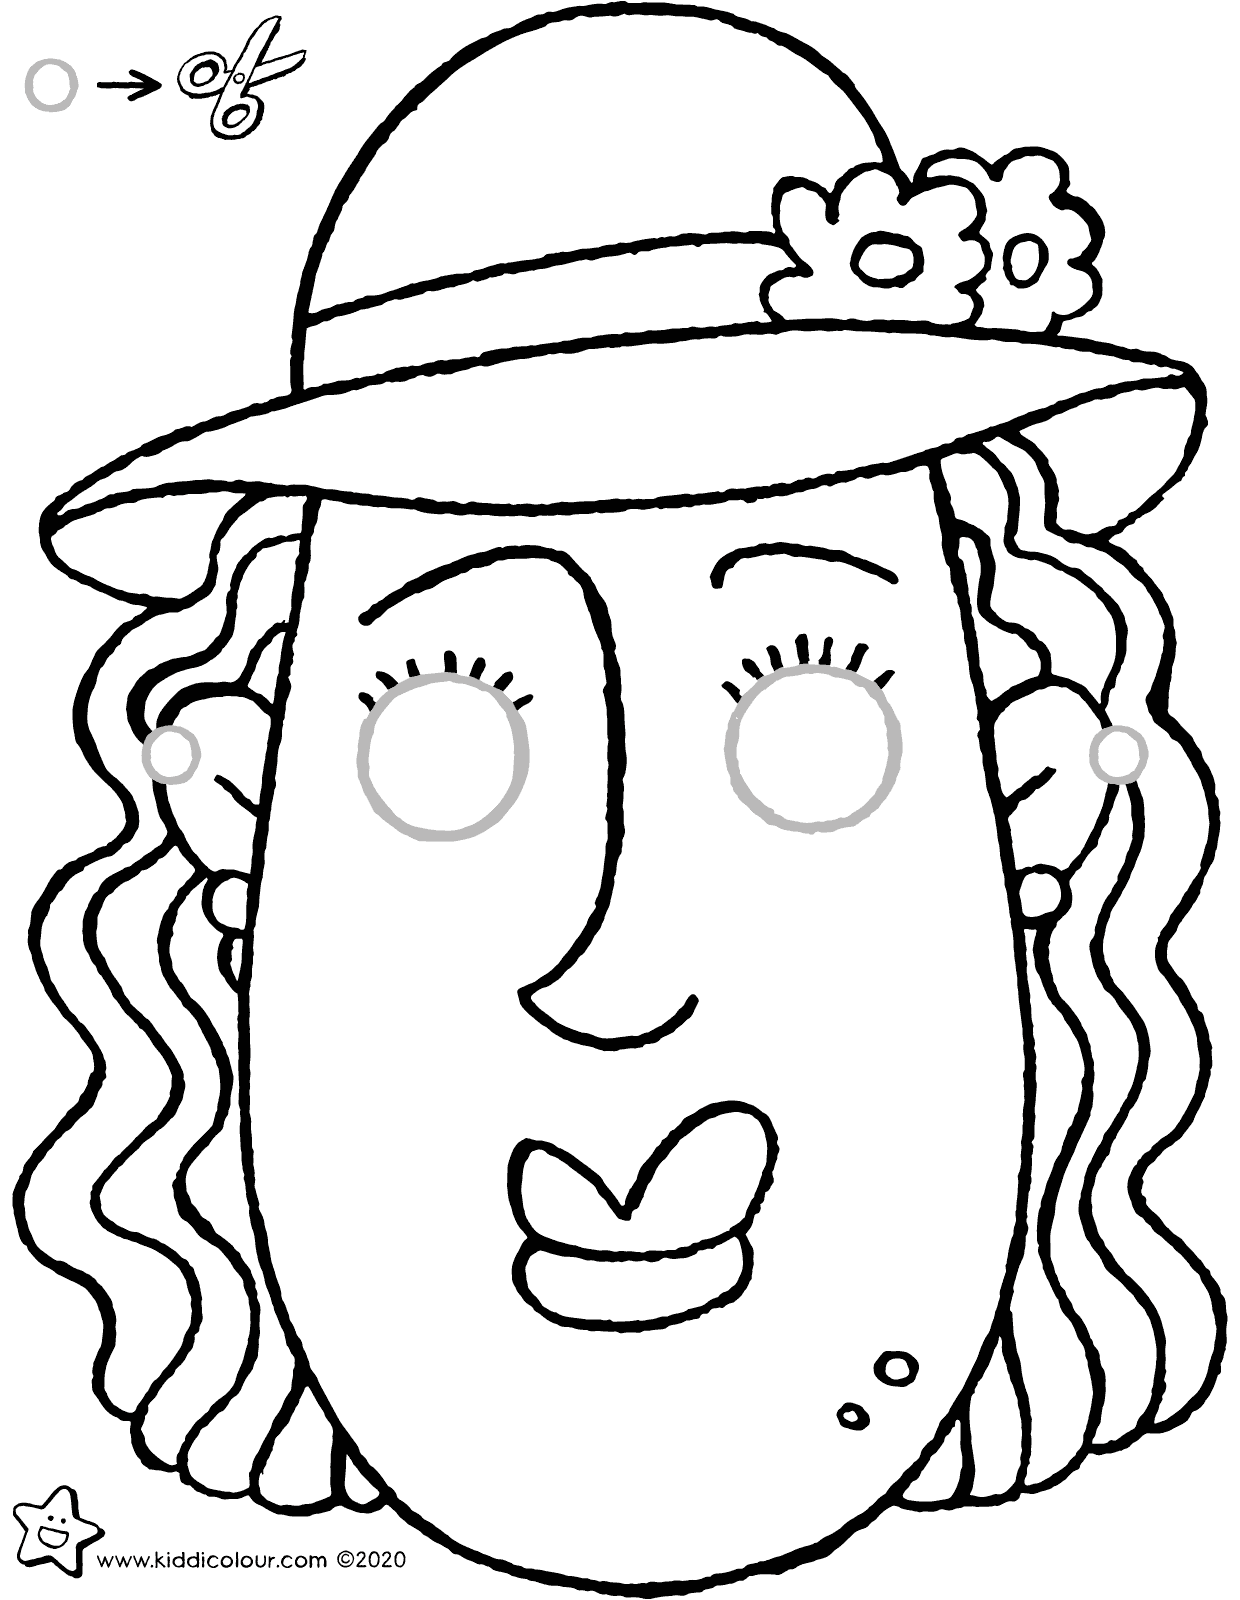 make your own 'Judith' mask colouring page drawing picture 01V